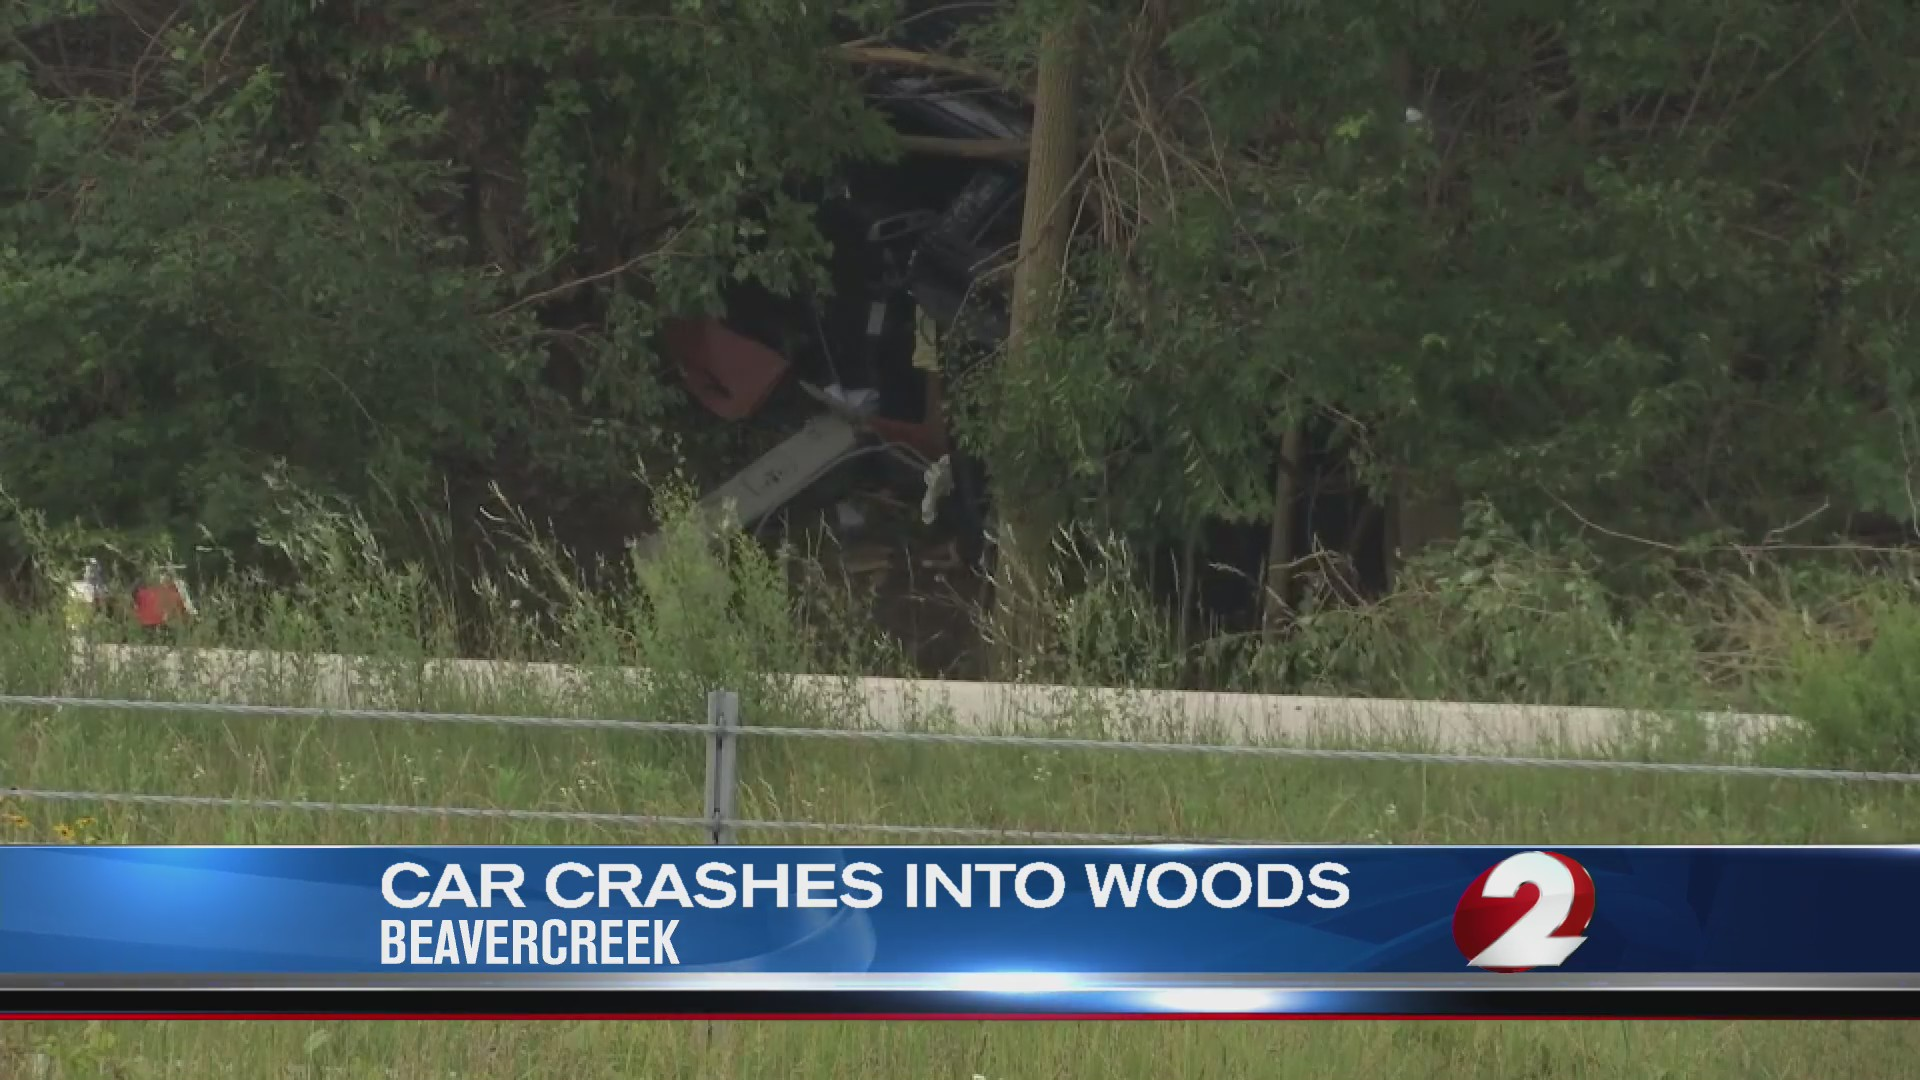 Car crashes into a tree in Beavercreek